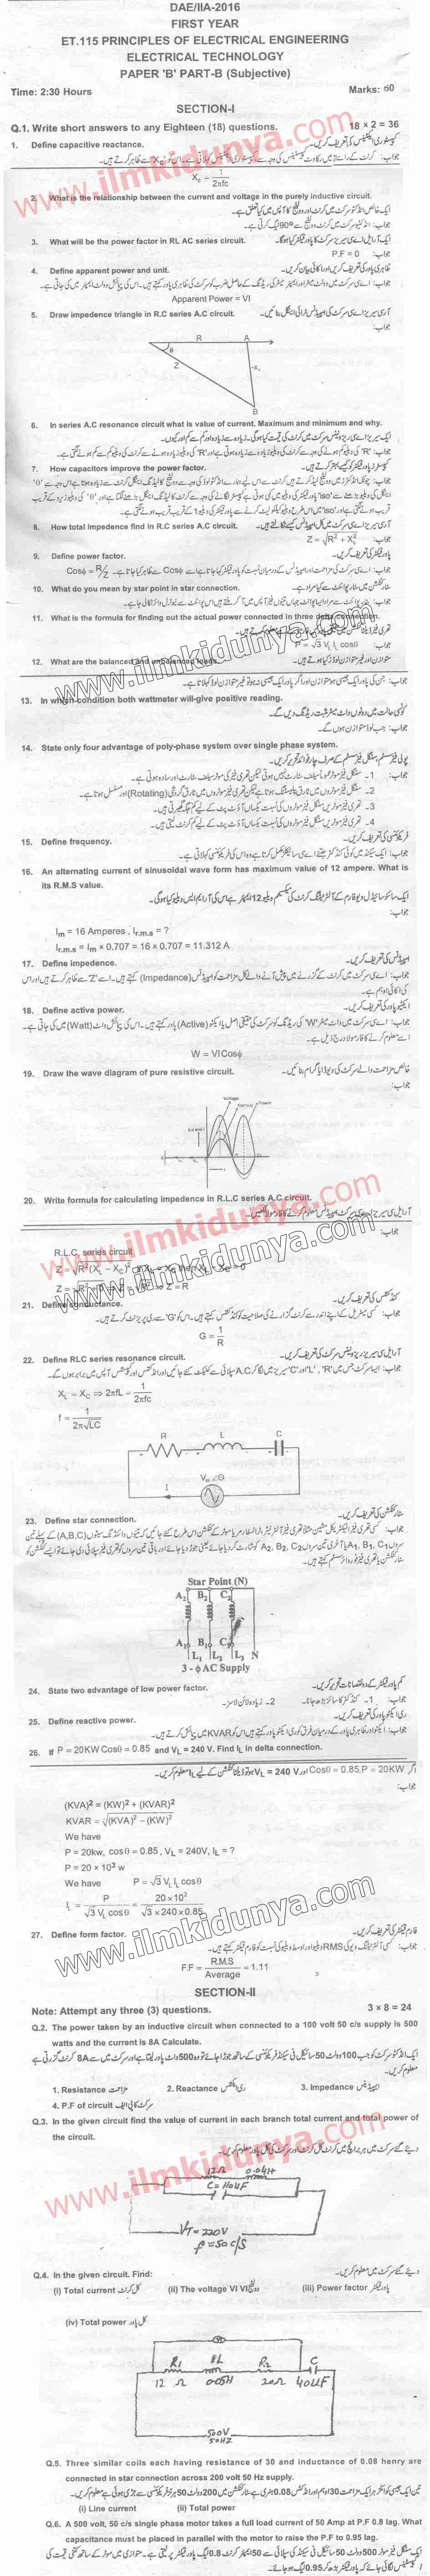 Dae Ia 2016 Past Papers Electrical 1st Year Principles Of Print Reading Engineering